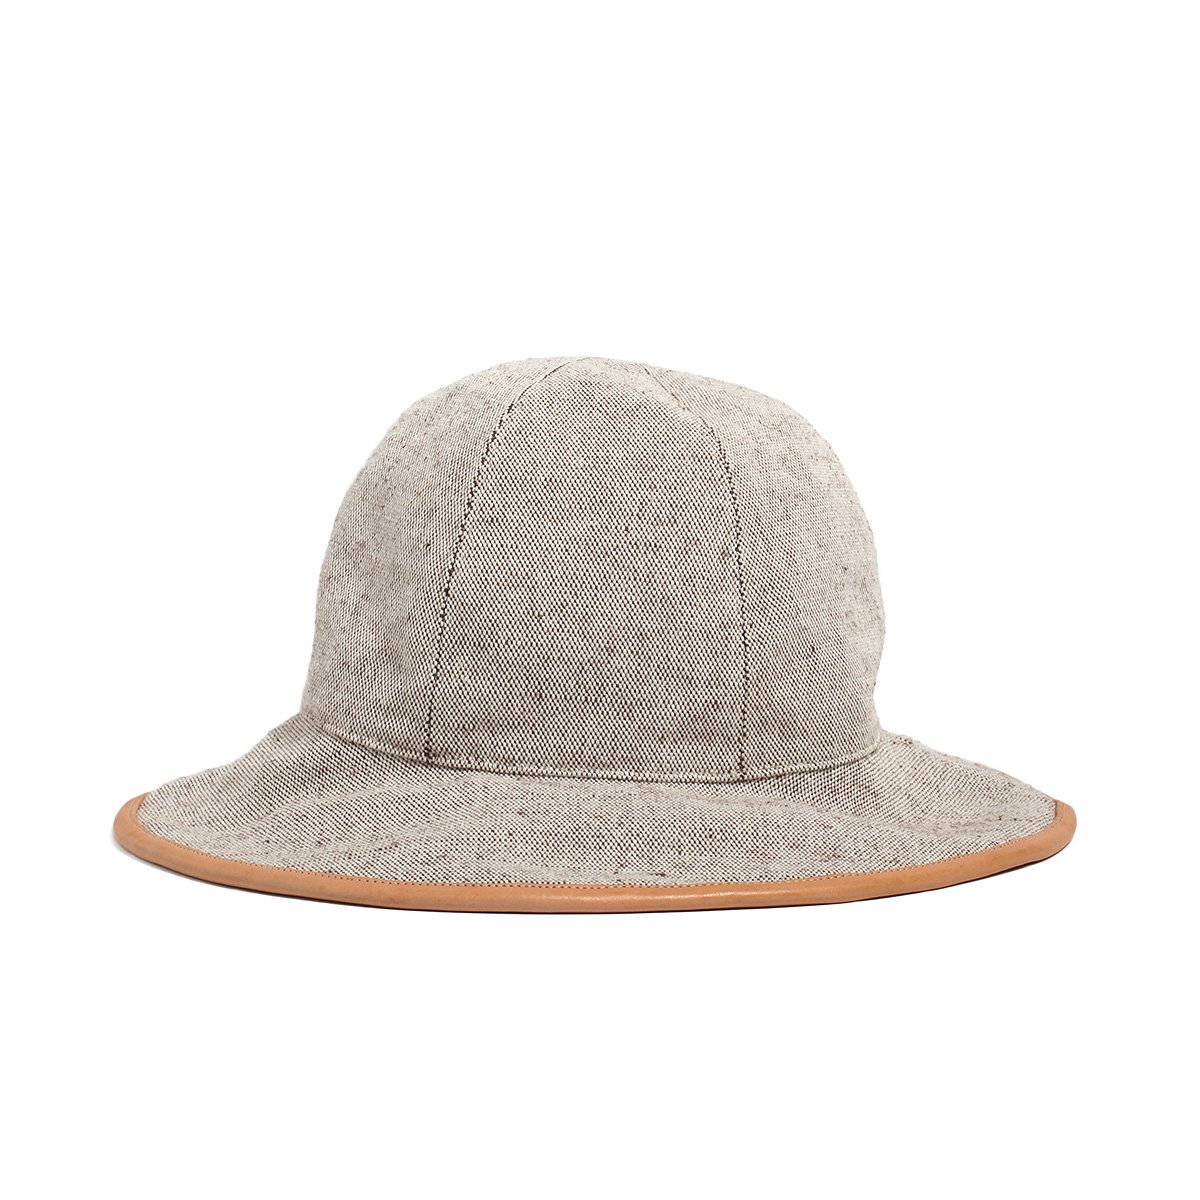 RAIN HAT WITH LEATHER PIPNG 詳細画像2